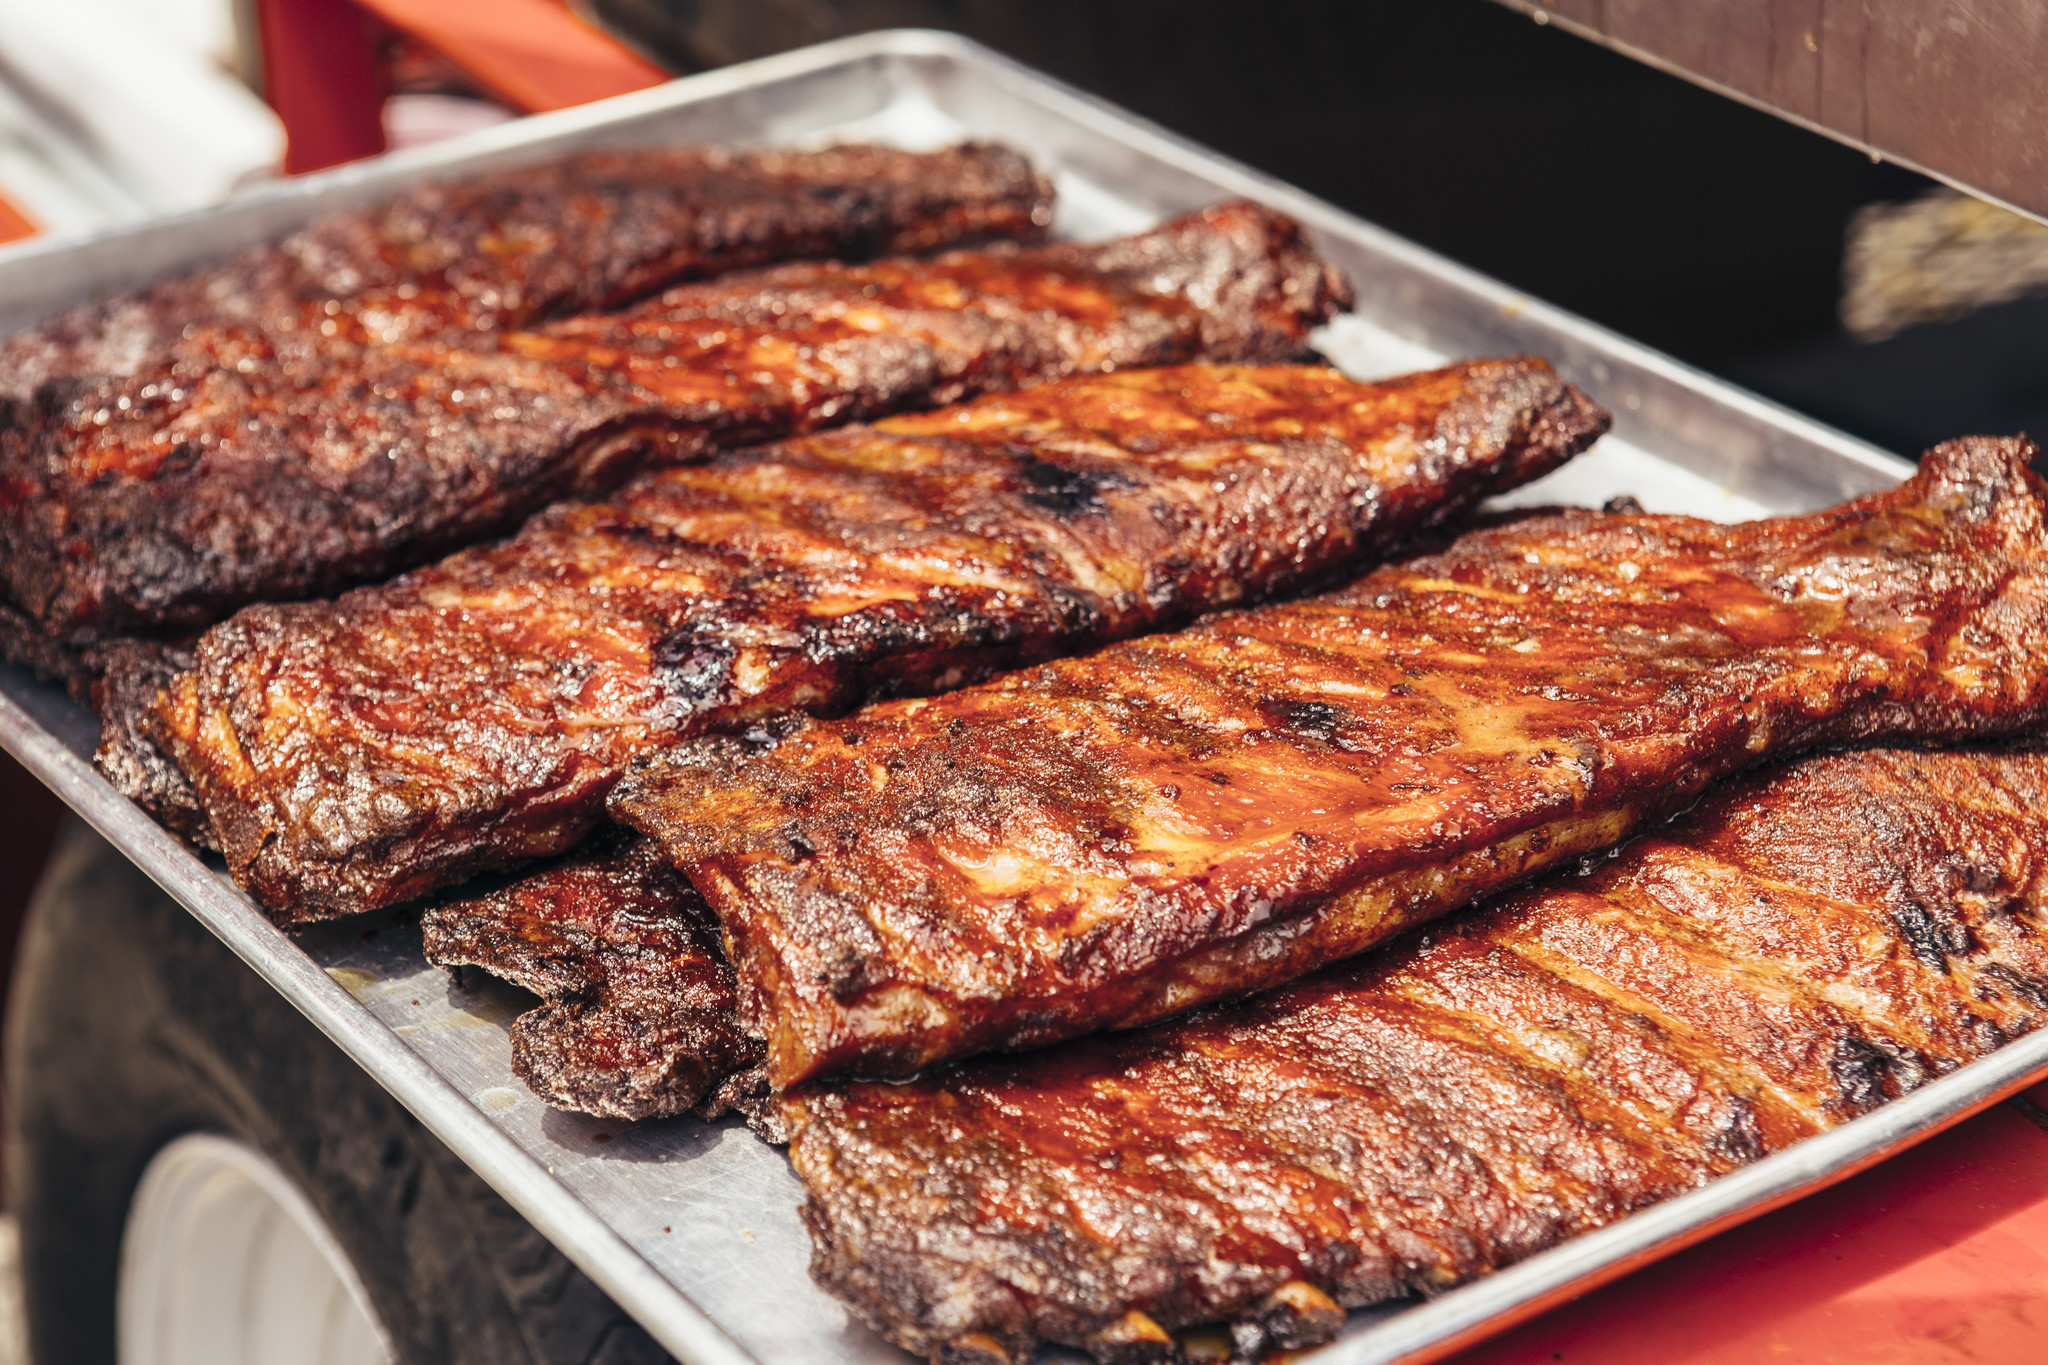 windy city smokeout brings nationally acclaimed barbecue restaurants to chicago chicago tribune. Black Bedroom Furniture Sets. Home Design Ideas